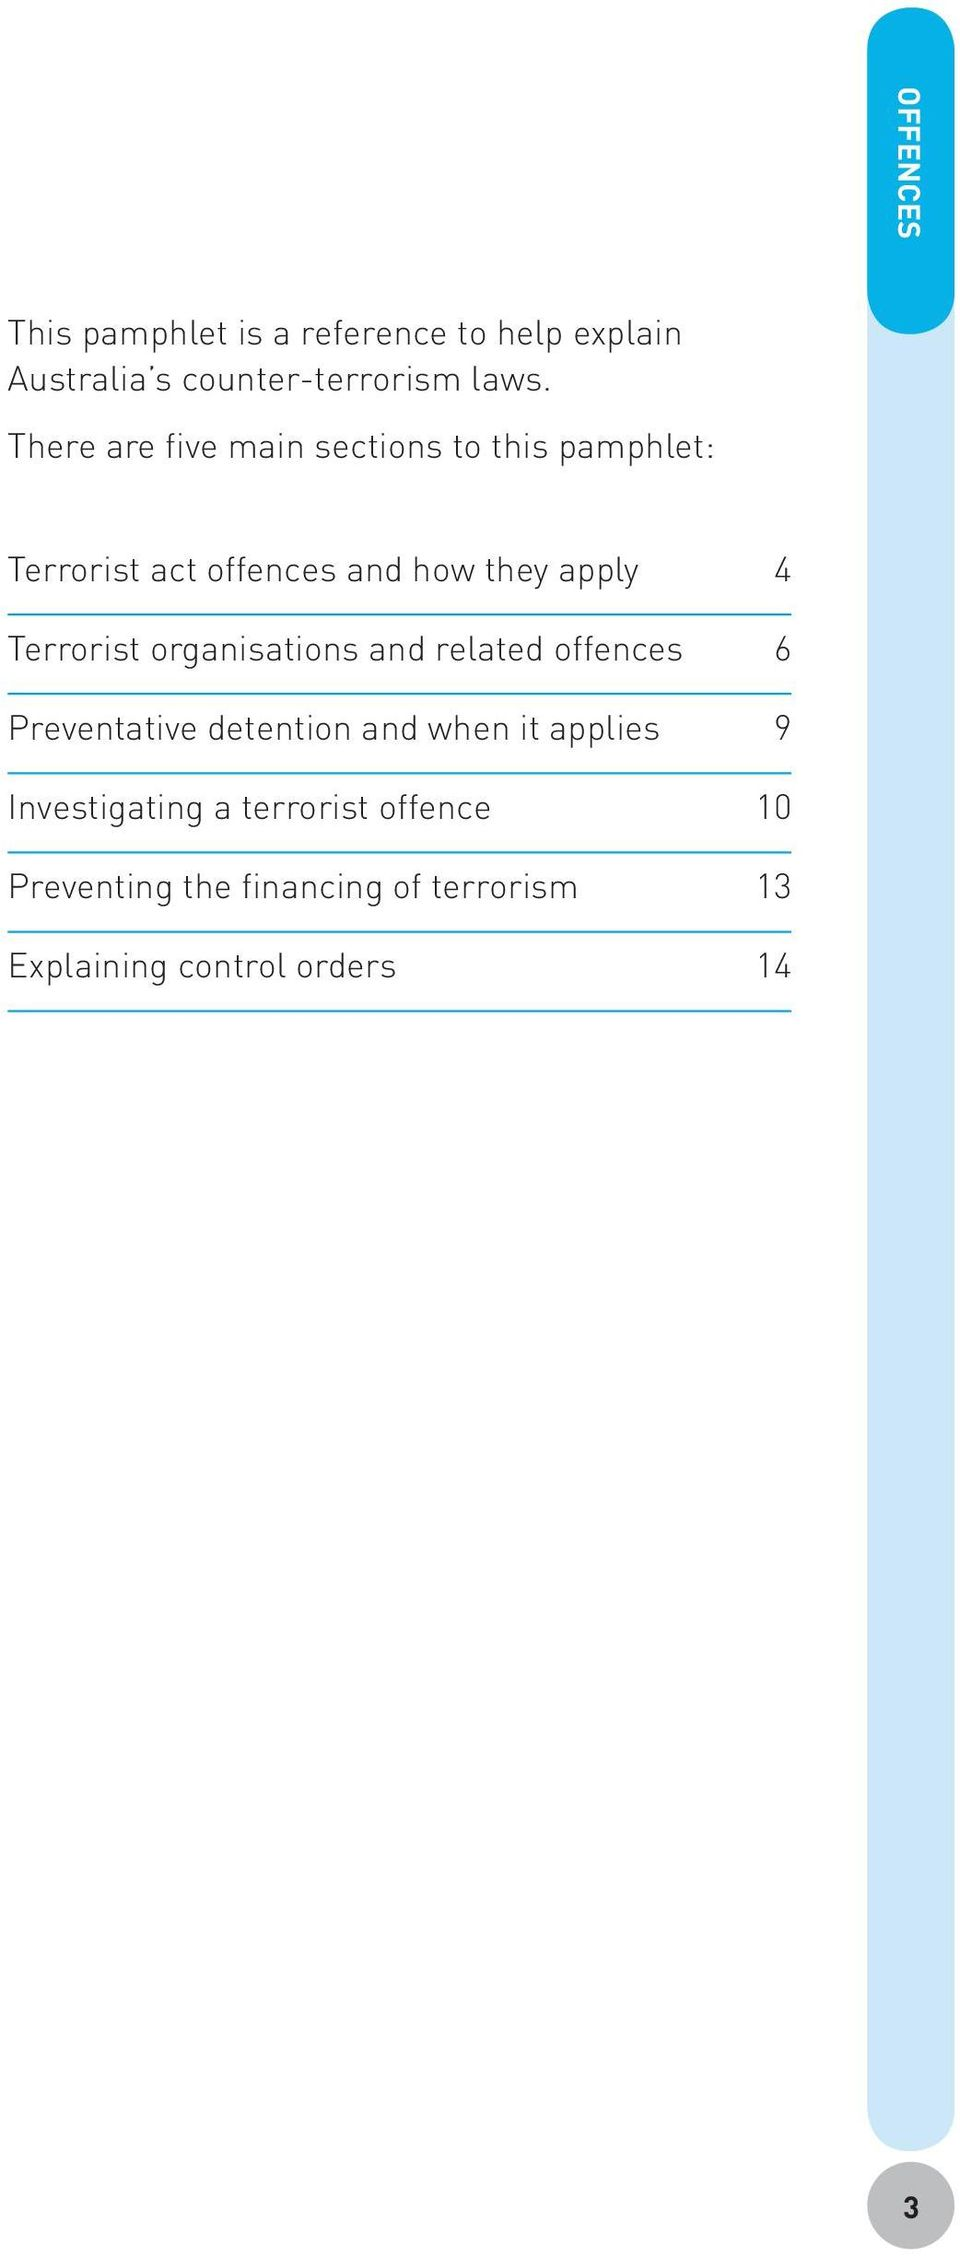 Terrorist organisations and related offences 6 Preventative detention and when it applies 9